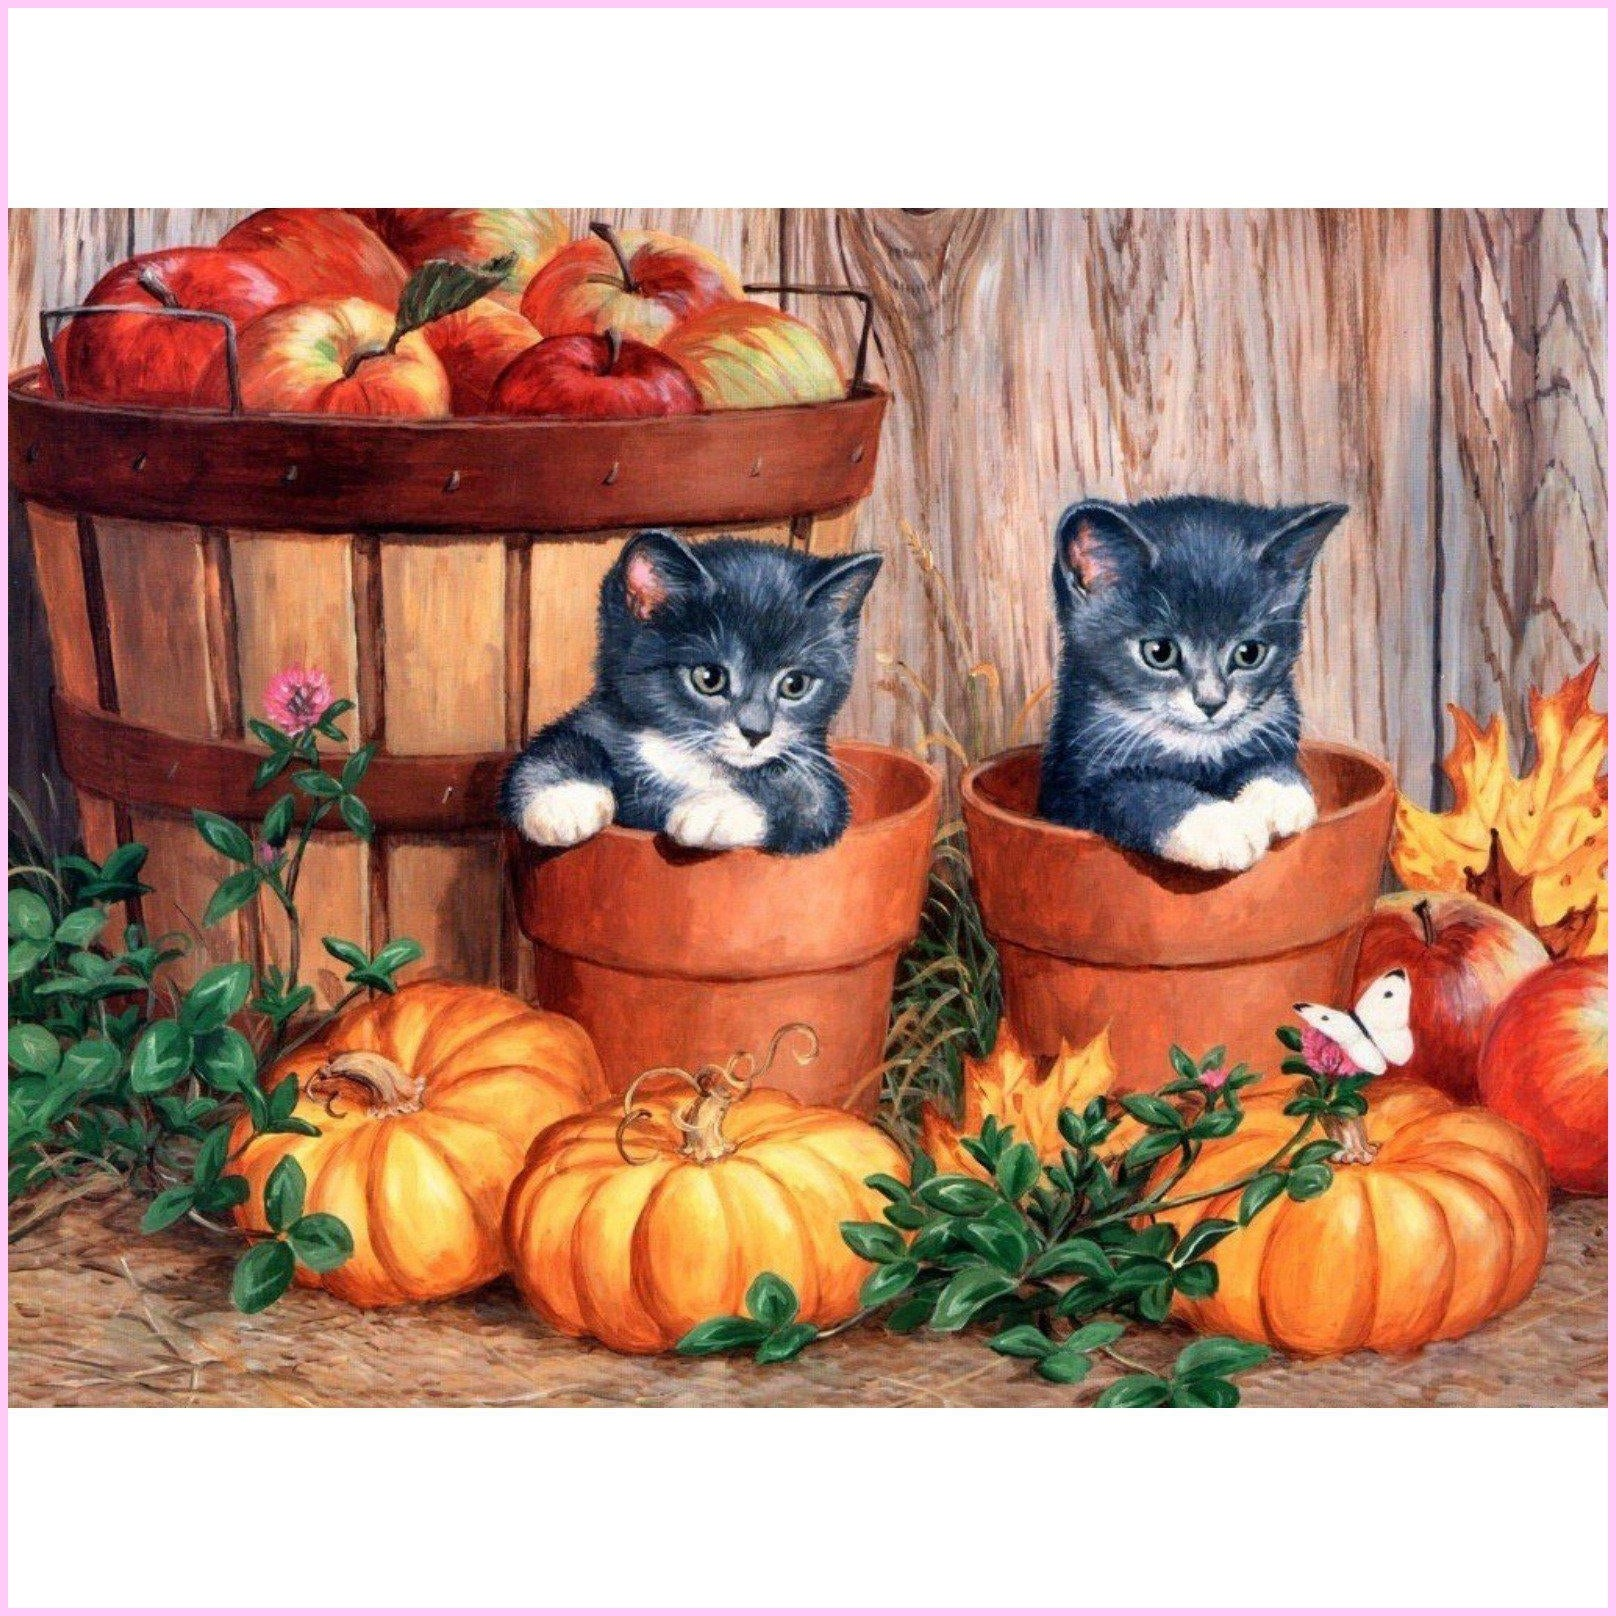 Playful Potted Kittens-Diamond Painting Kit-30x40cm (12x16 in)-Square-Heartful Diamonds